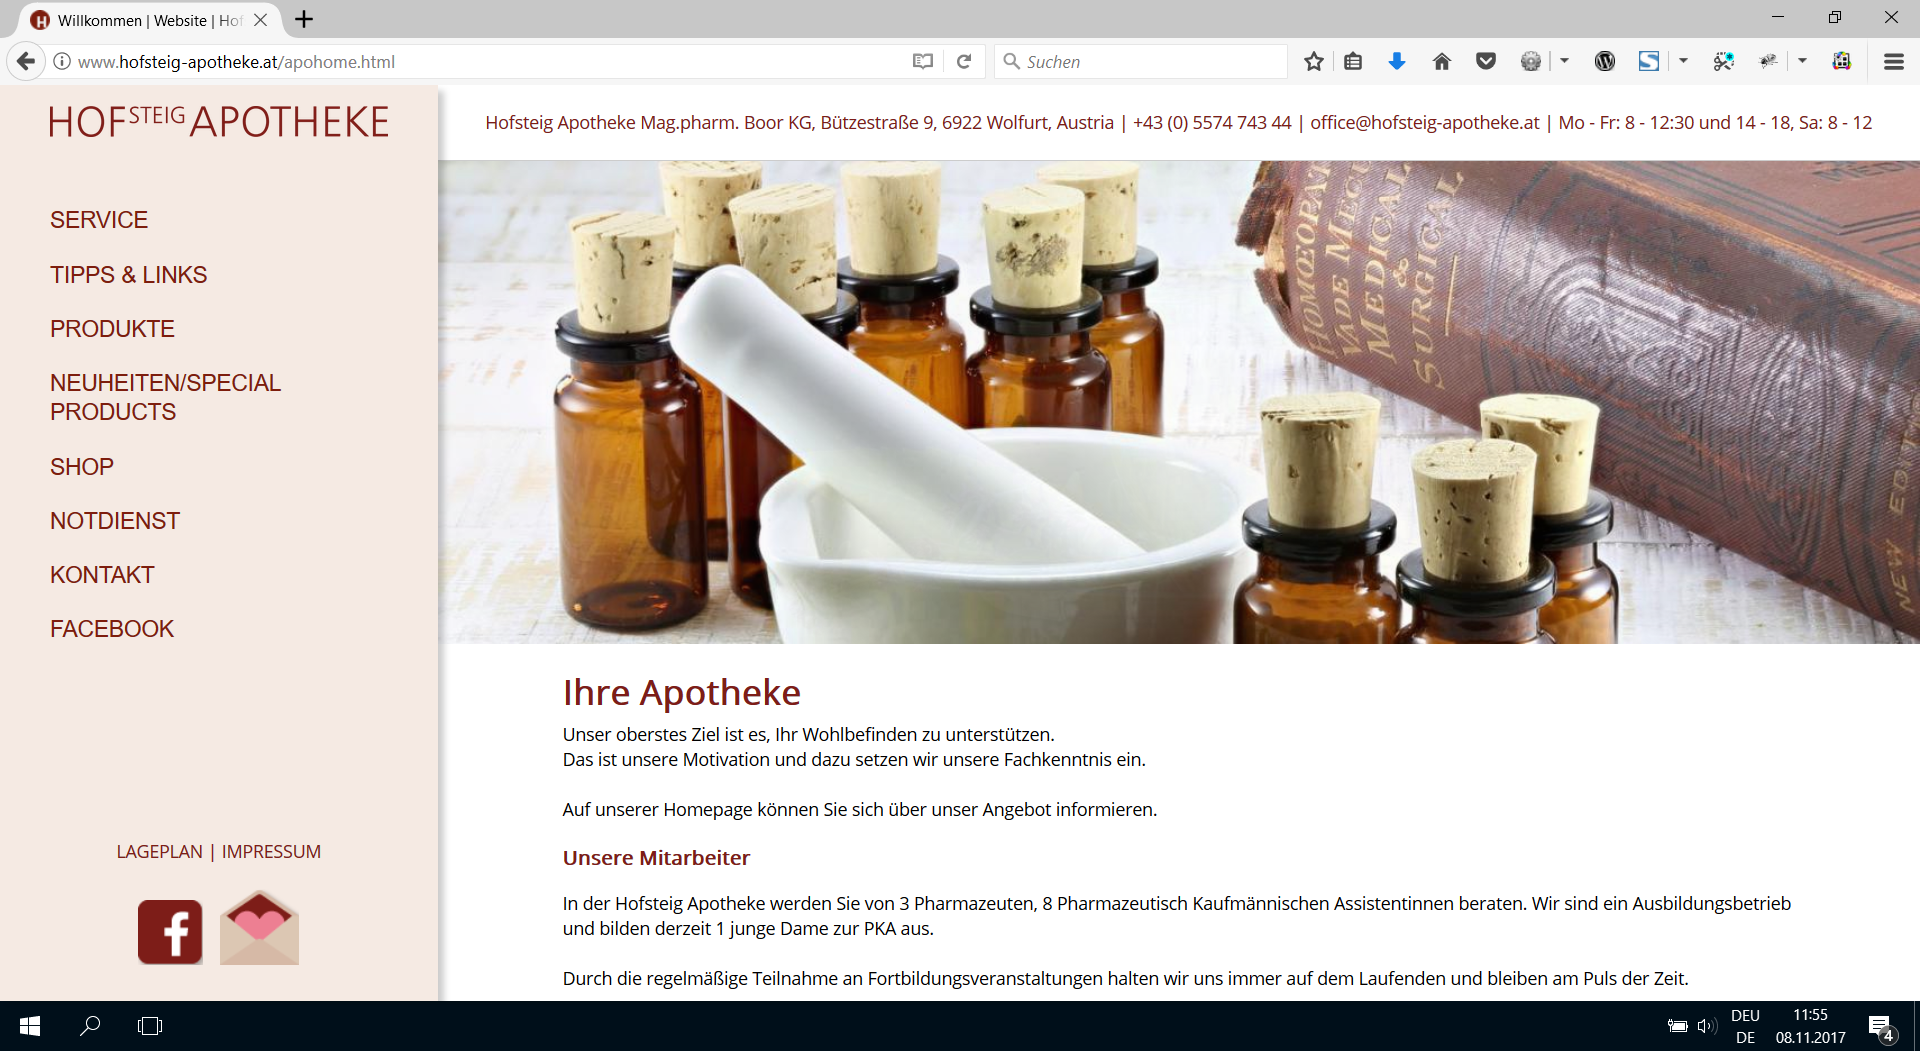 Webdesign Hofsteig-Apotheke.at